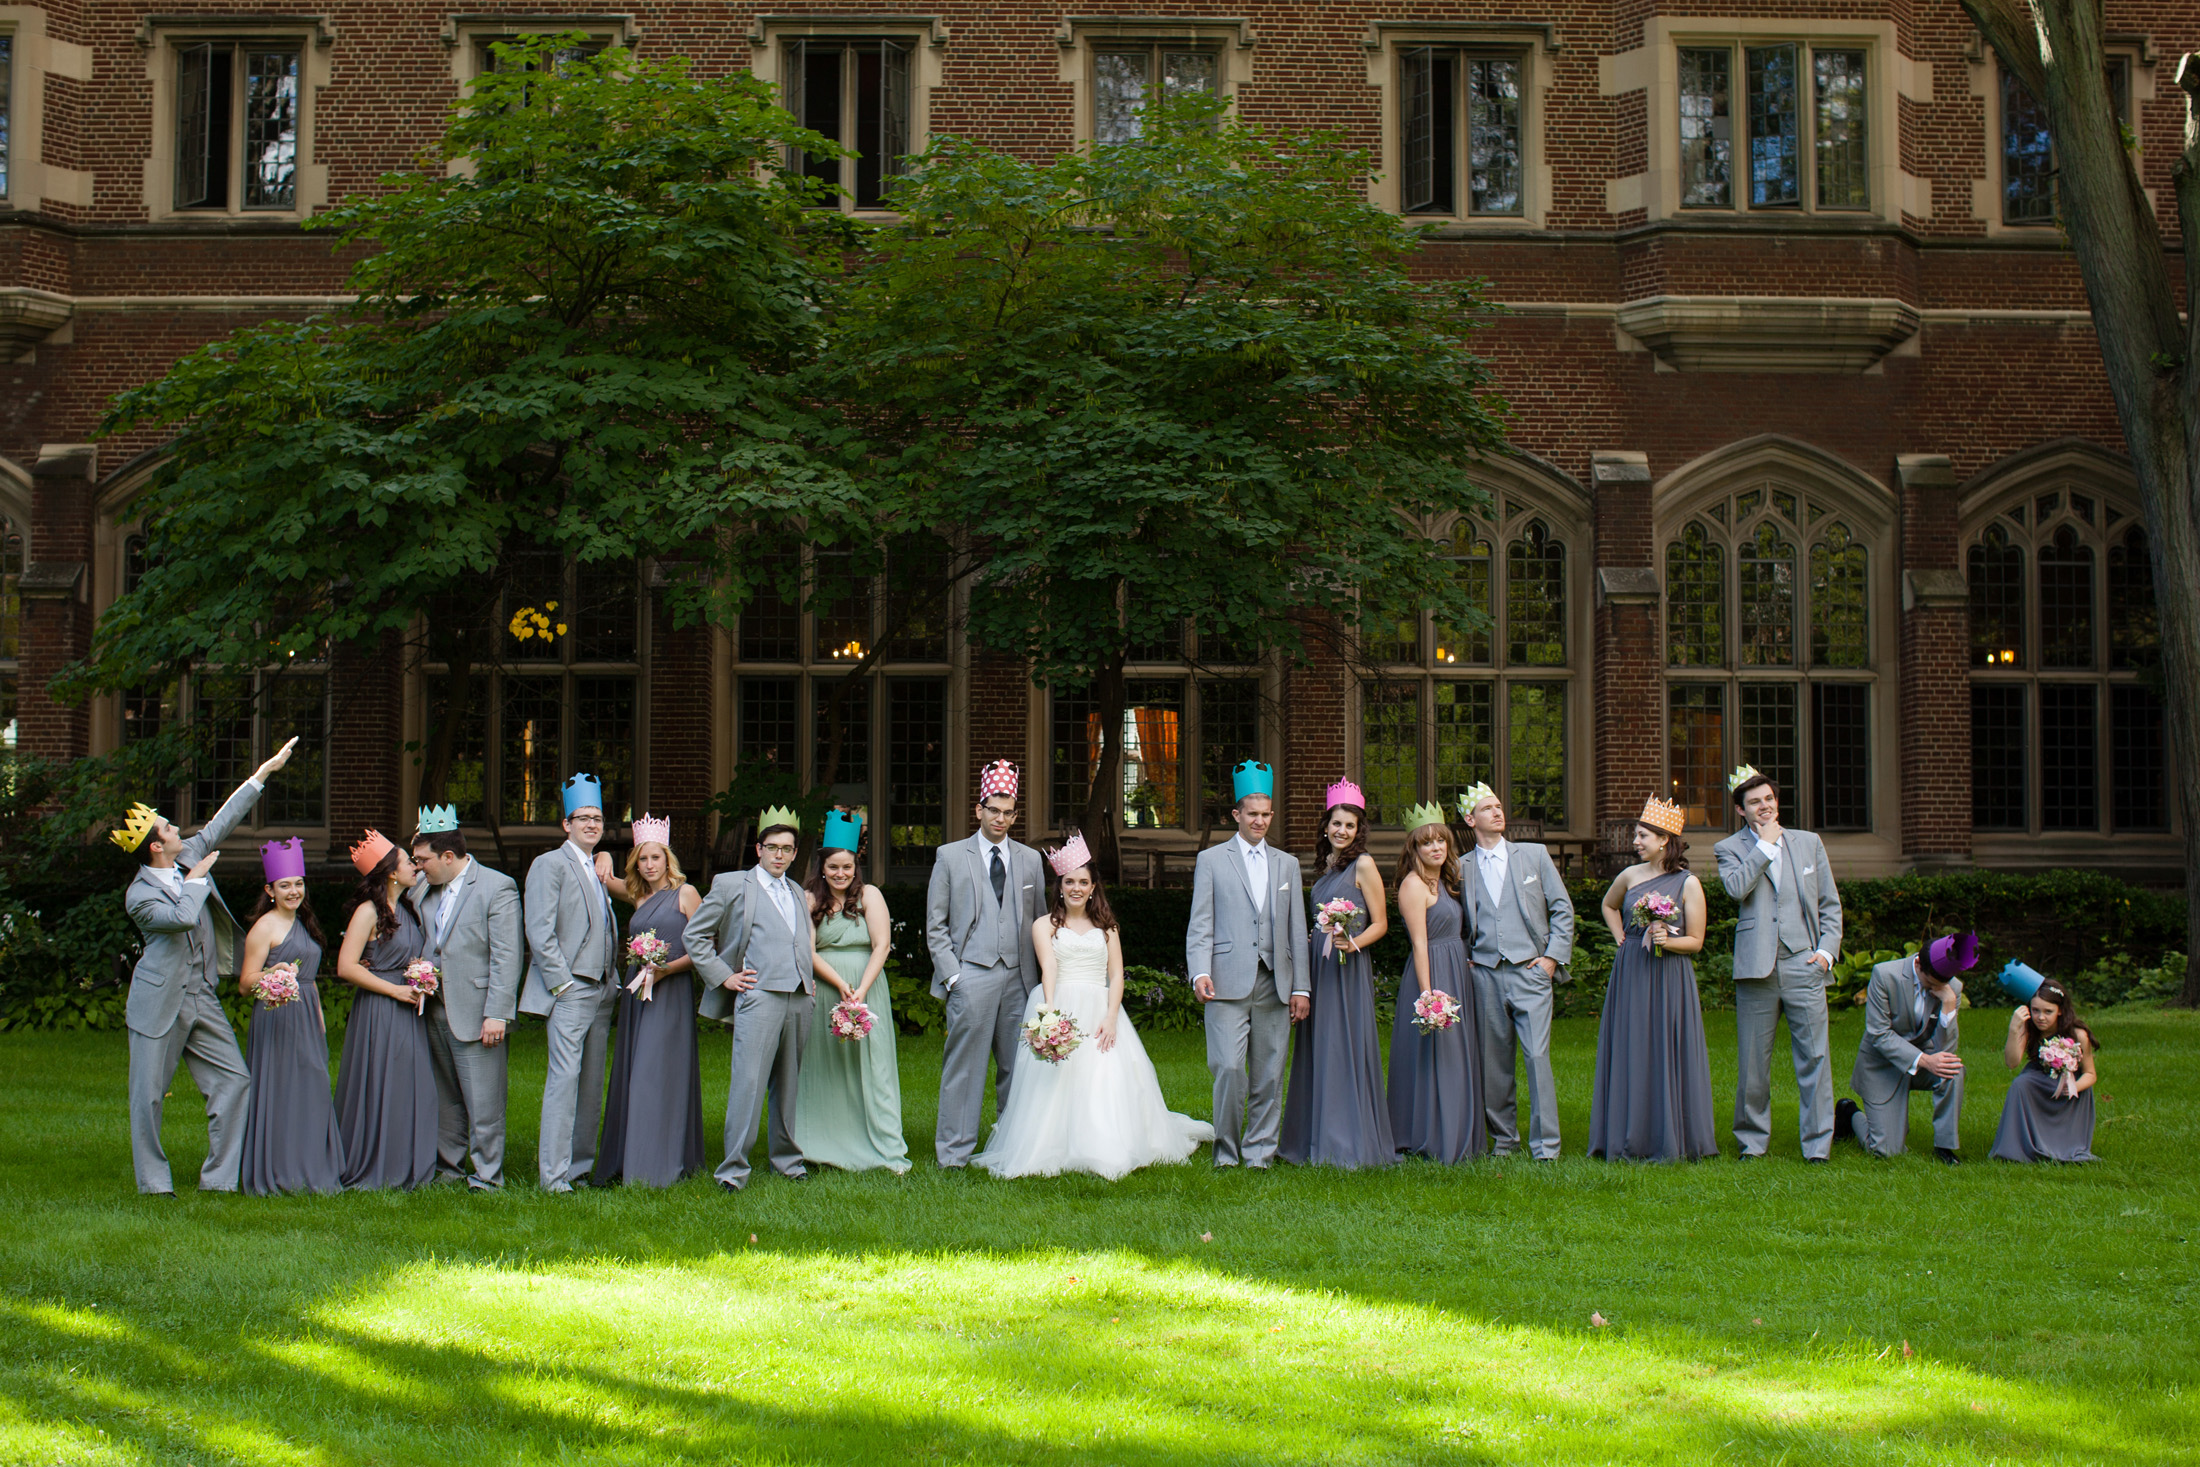 UofM_weddings_hull_melanie_reyes_053